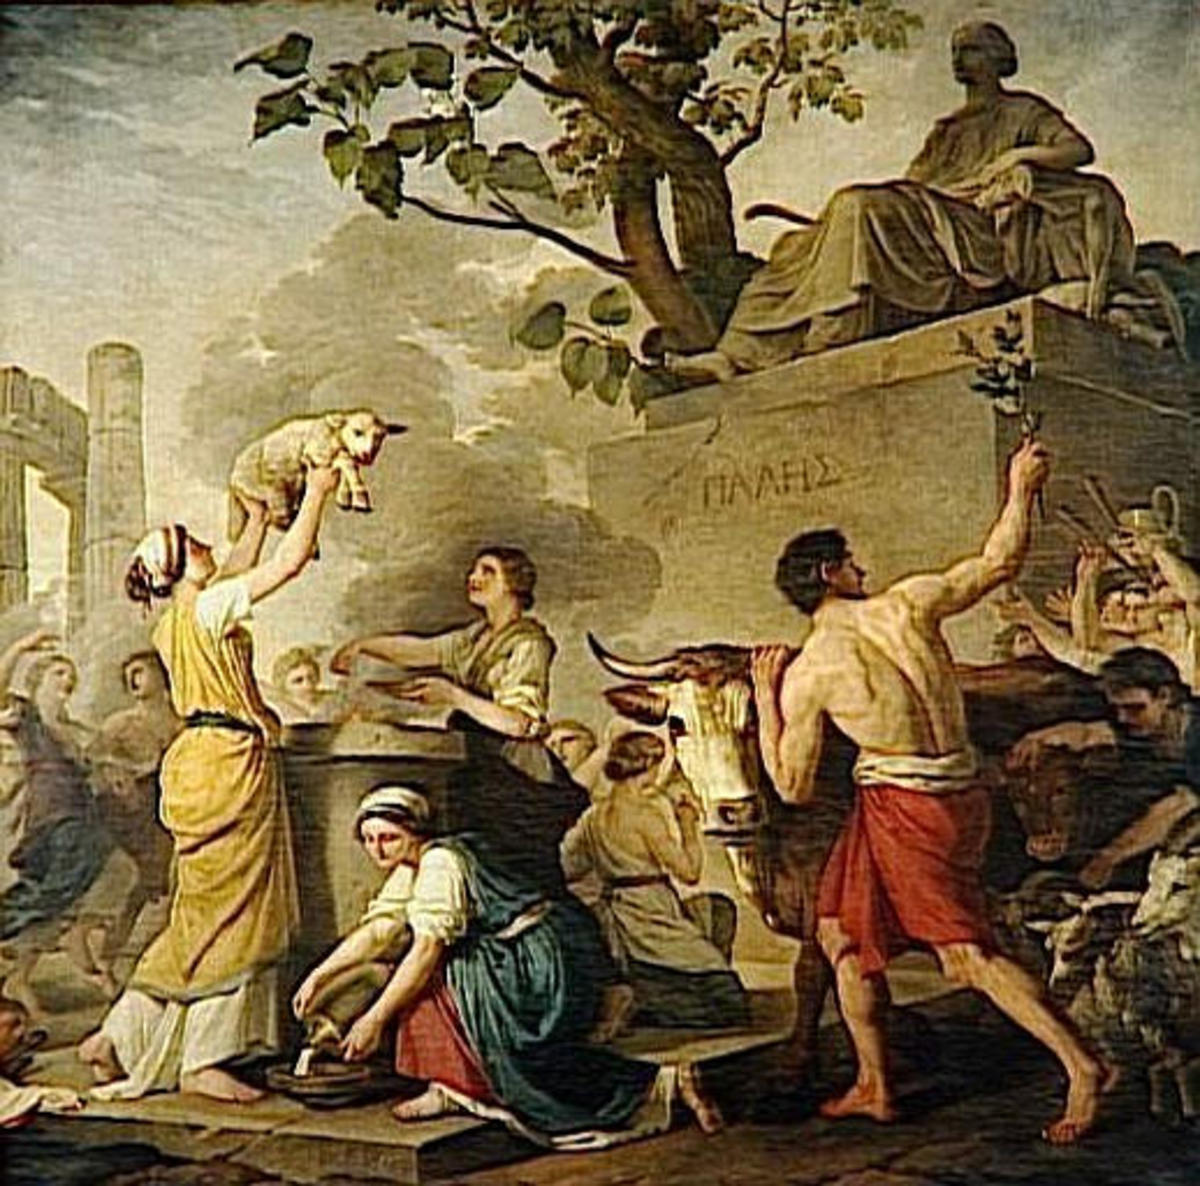 During Parilia, purifying rituals involving smoke and fire were carried out by shepherds and others to honor Pale, the god or goddess of flocks and herds.